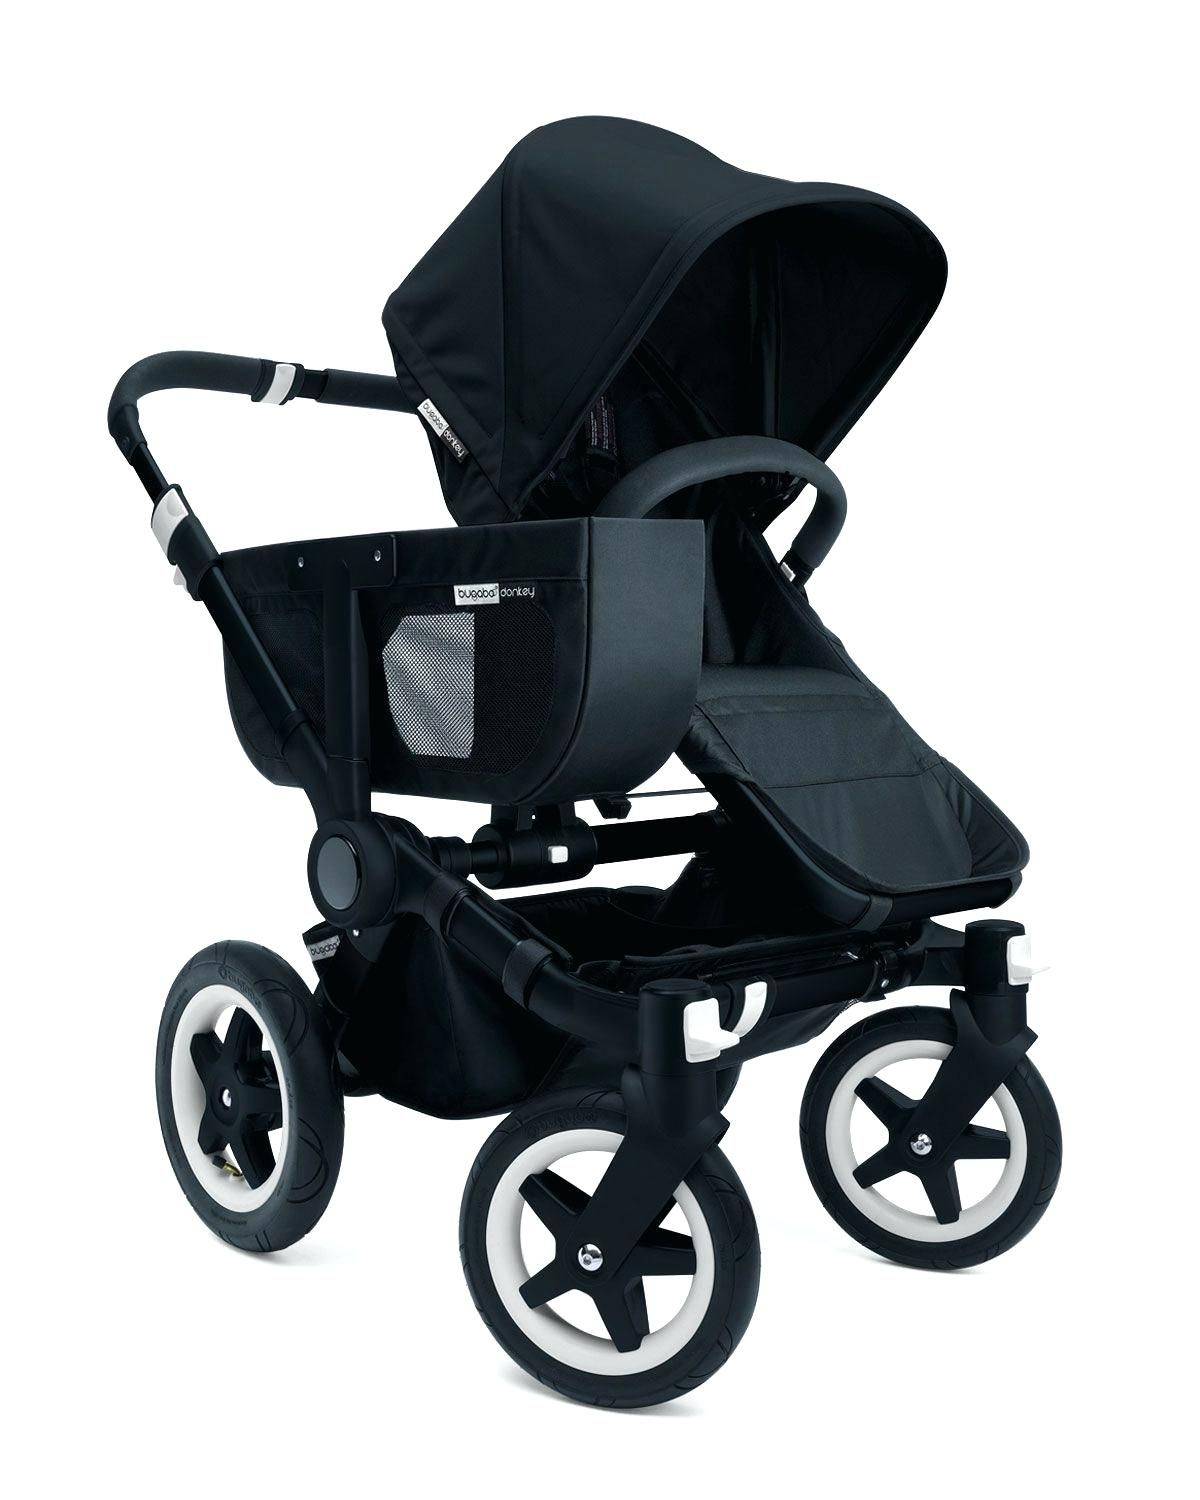 Kinderwagen Stokke Rot Italiener Kinderwagen Donkey Duo Erweiterung Set All Black